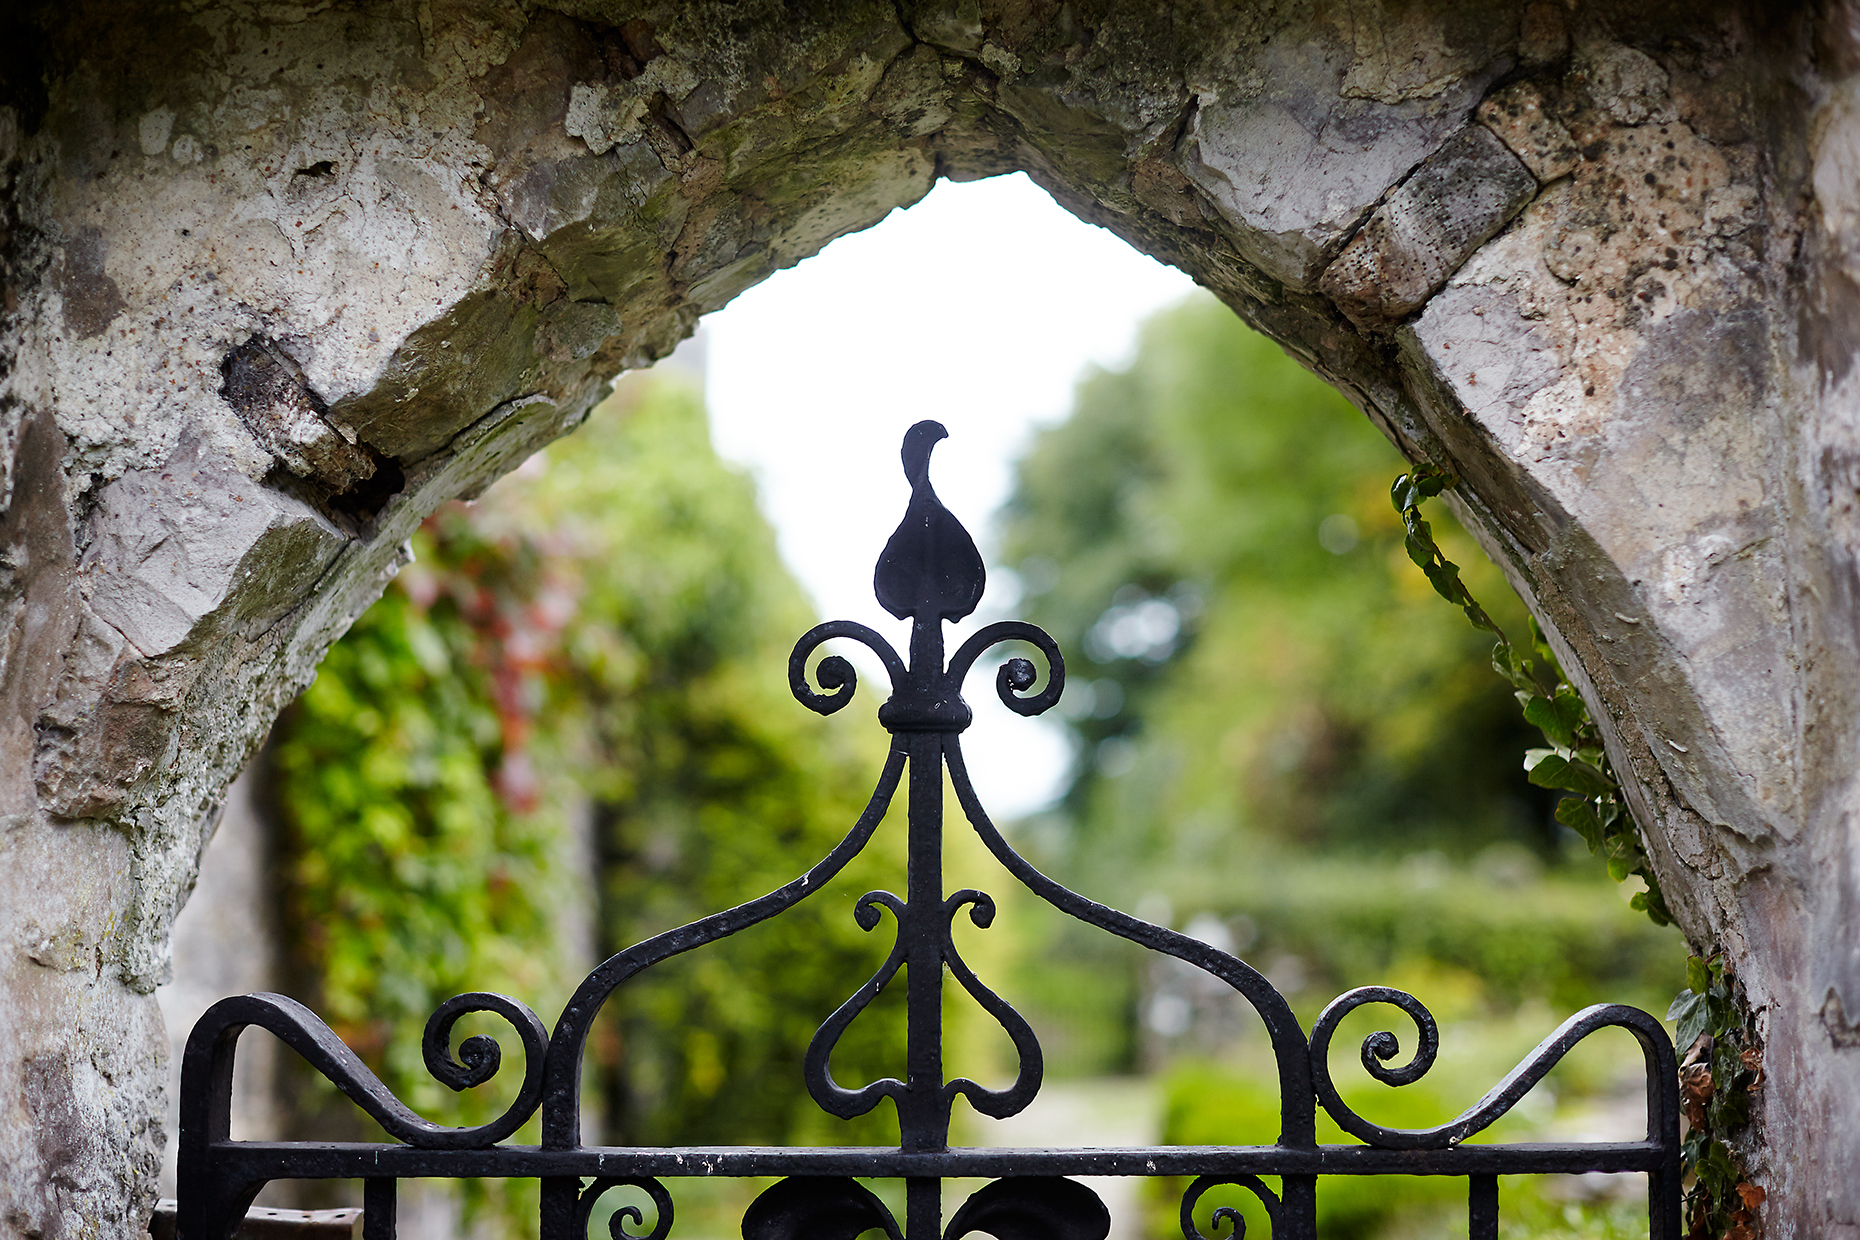 Stacey Van Berkel Photography I Gorgeous Wrought Iron Gate at Gwaenynog, Wales I Beatrix Potter's Summer Vacation spot